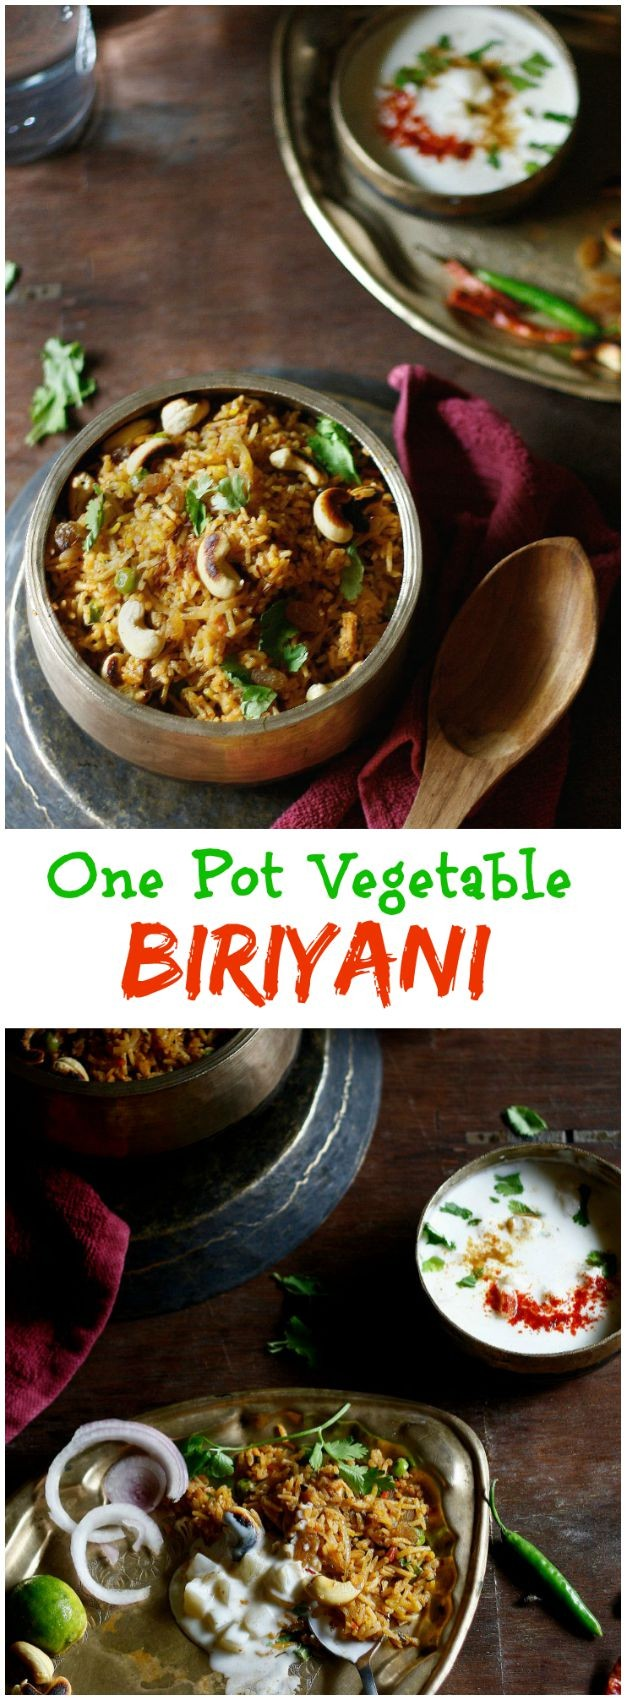 Vegetable biriyani is everything you need to turn a Meatless dinner into something special.